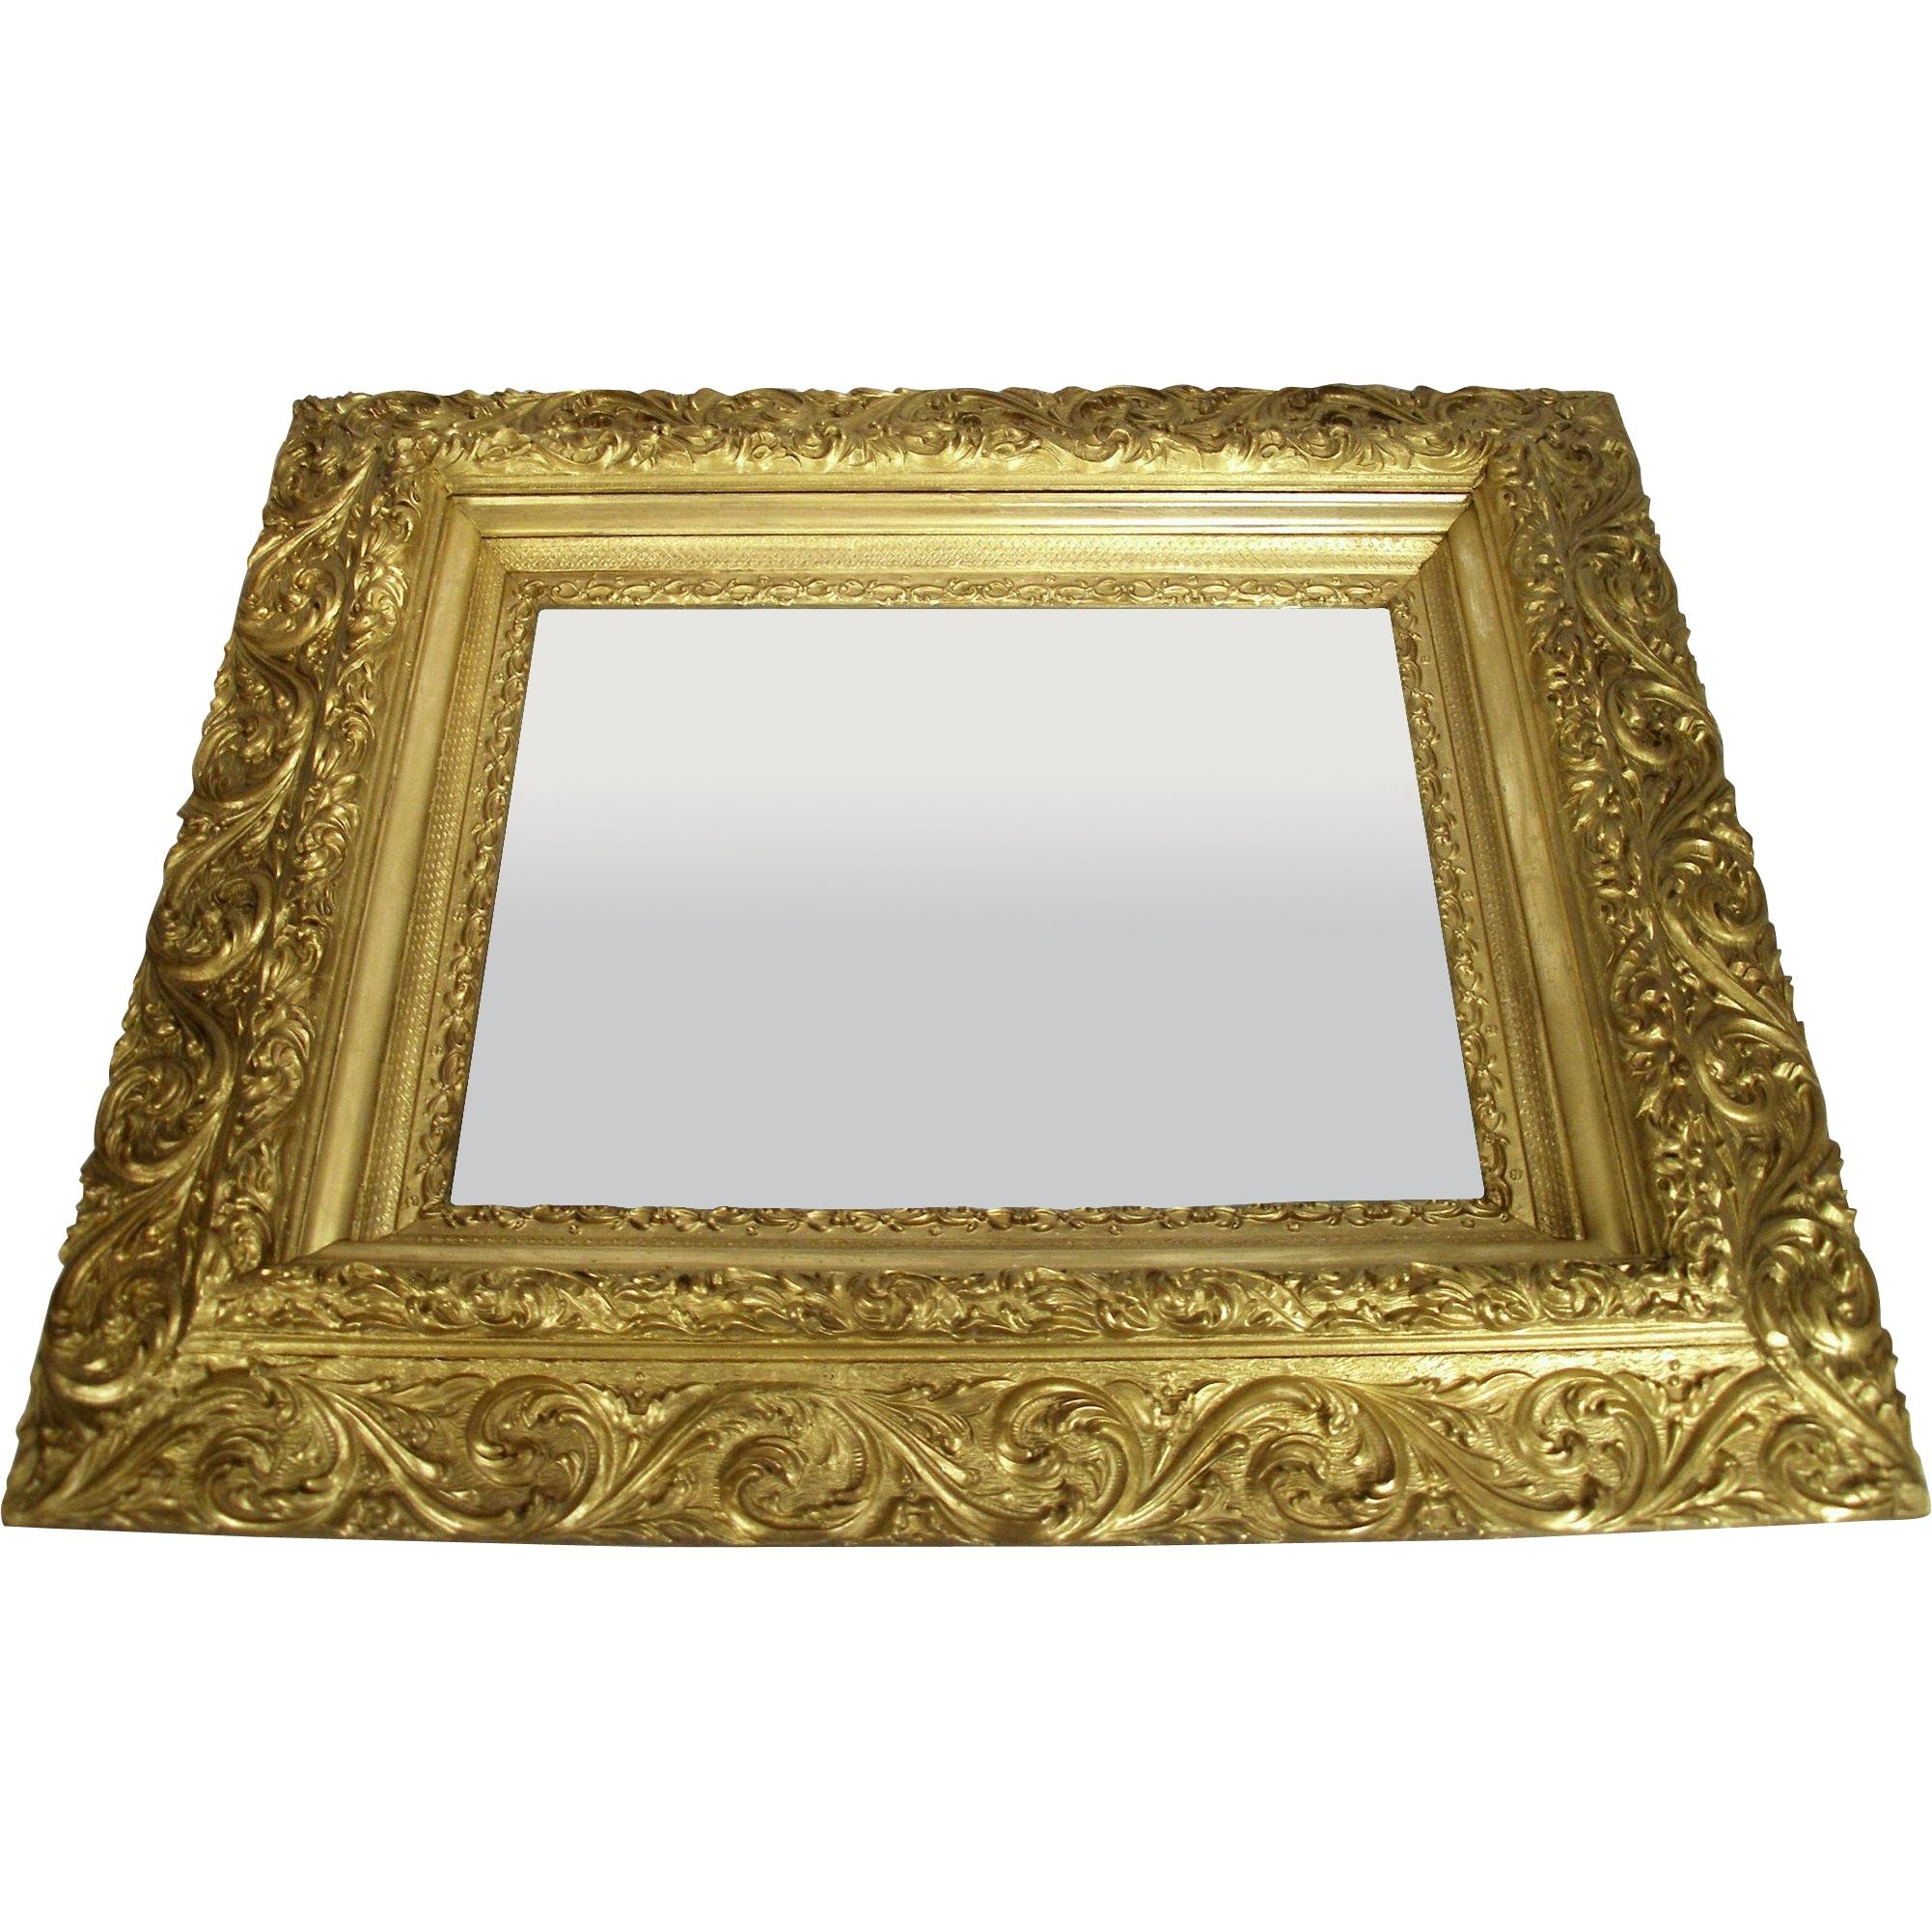 Antique Victorian Art Nouveau Gold Gilt Wood Frame Scroll Foliage Throughout Gold Gilt Mirror (Image 3 of 20)